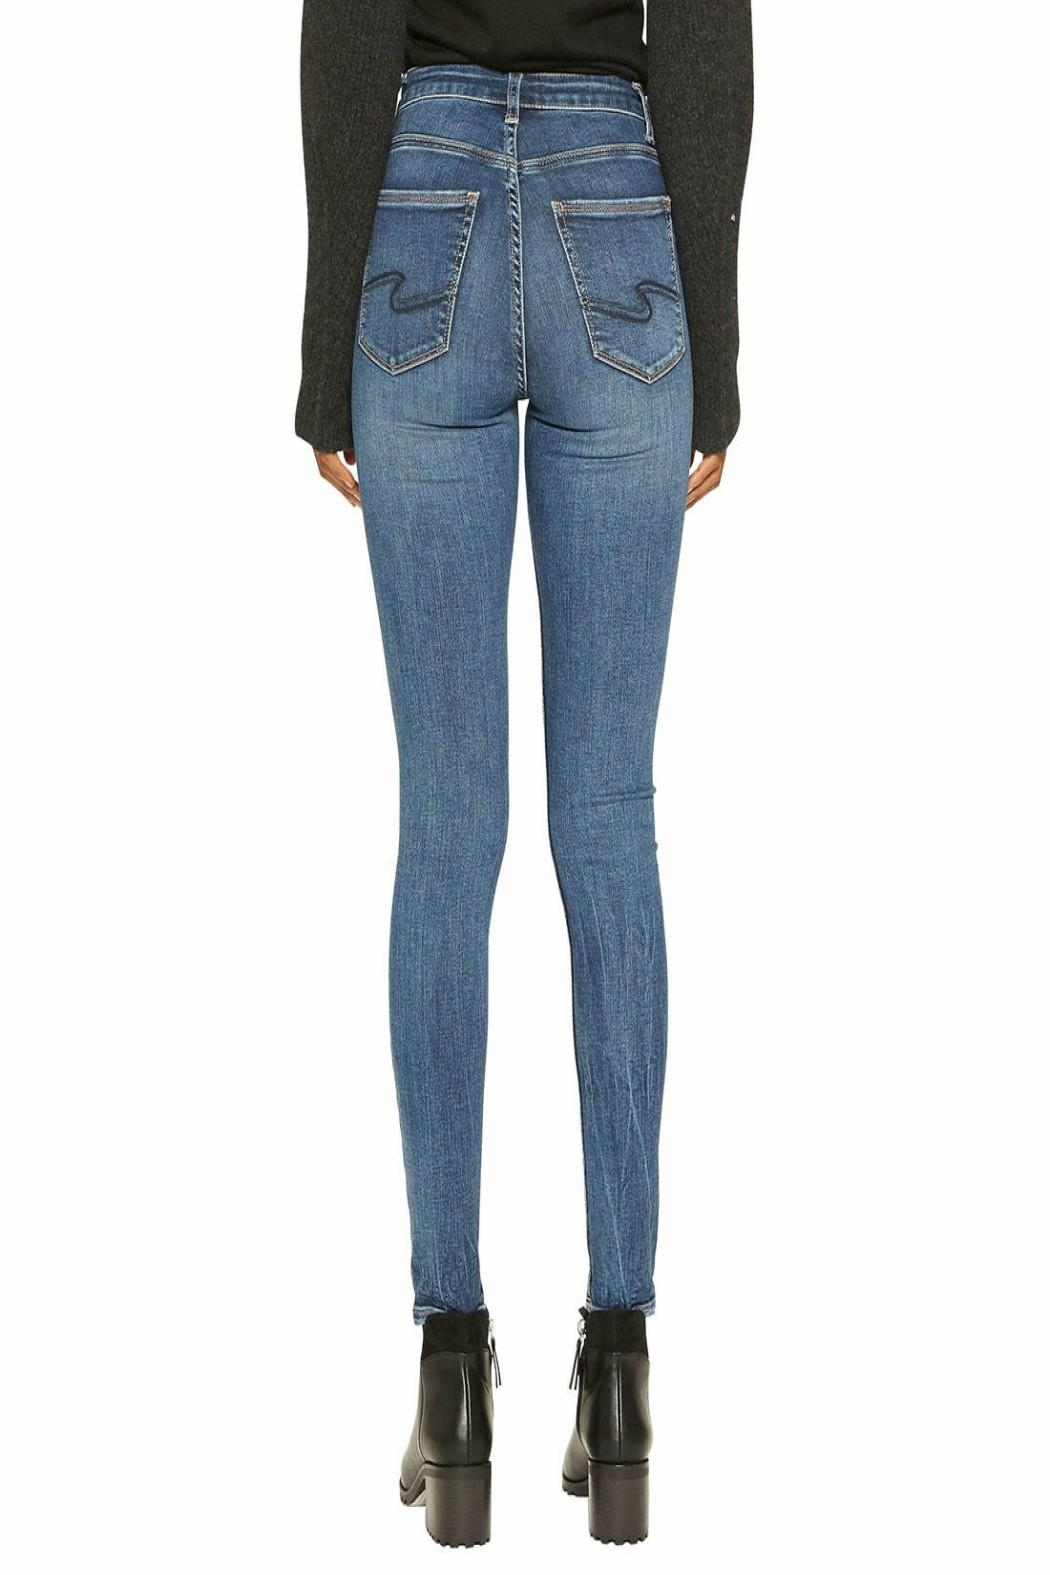 Silver Jeans Co. Robson High-Rise Skinny - Front Full Image